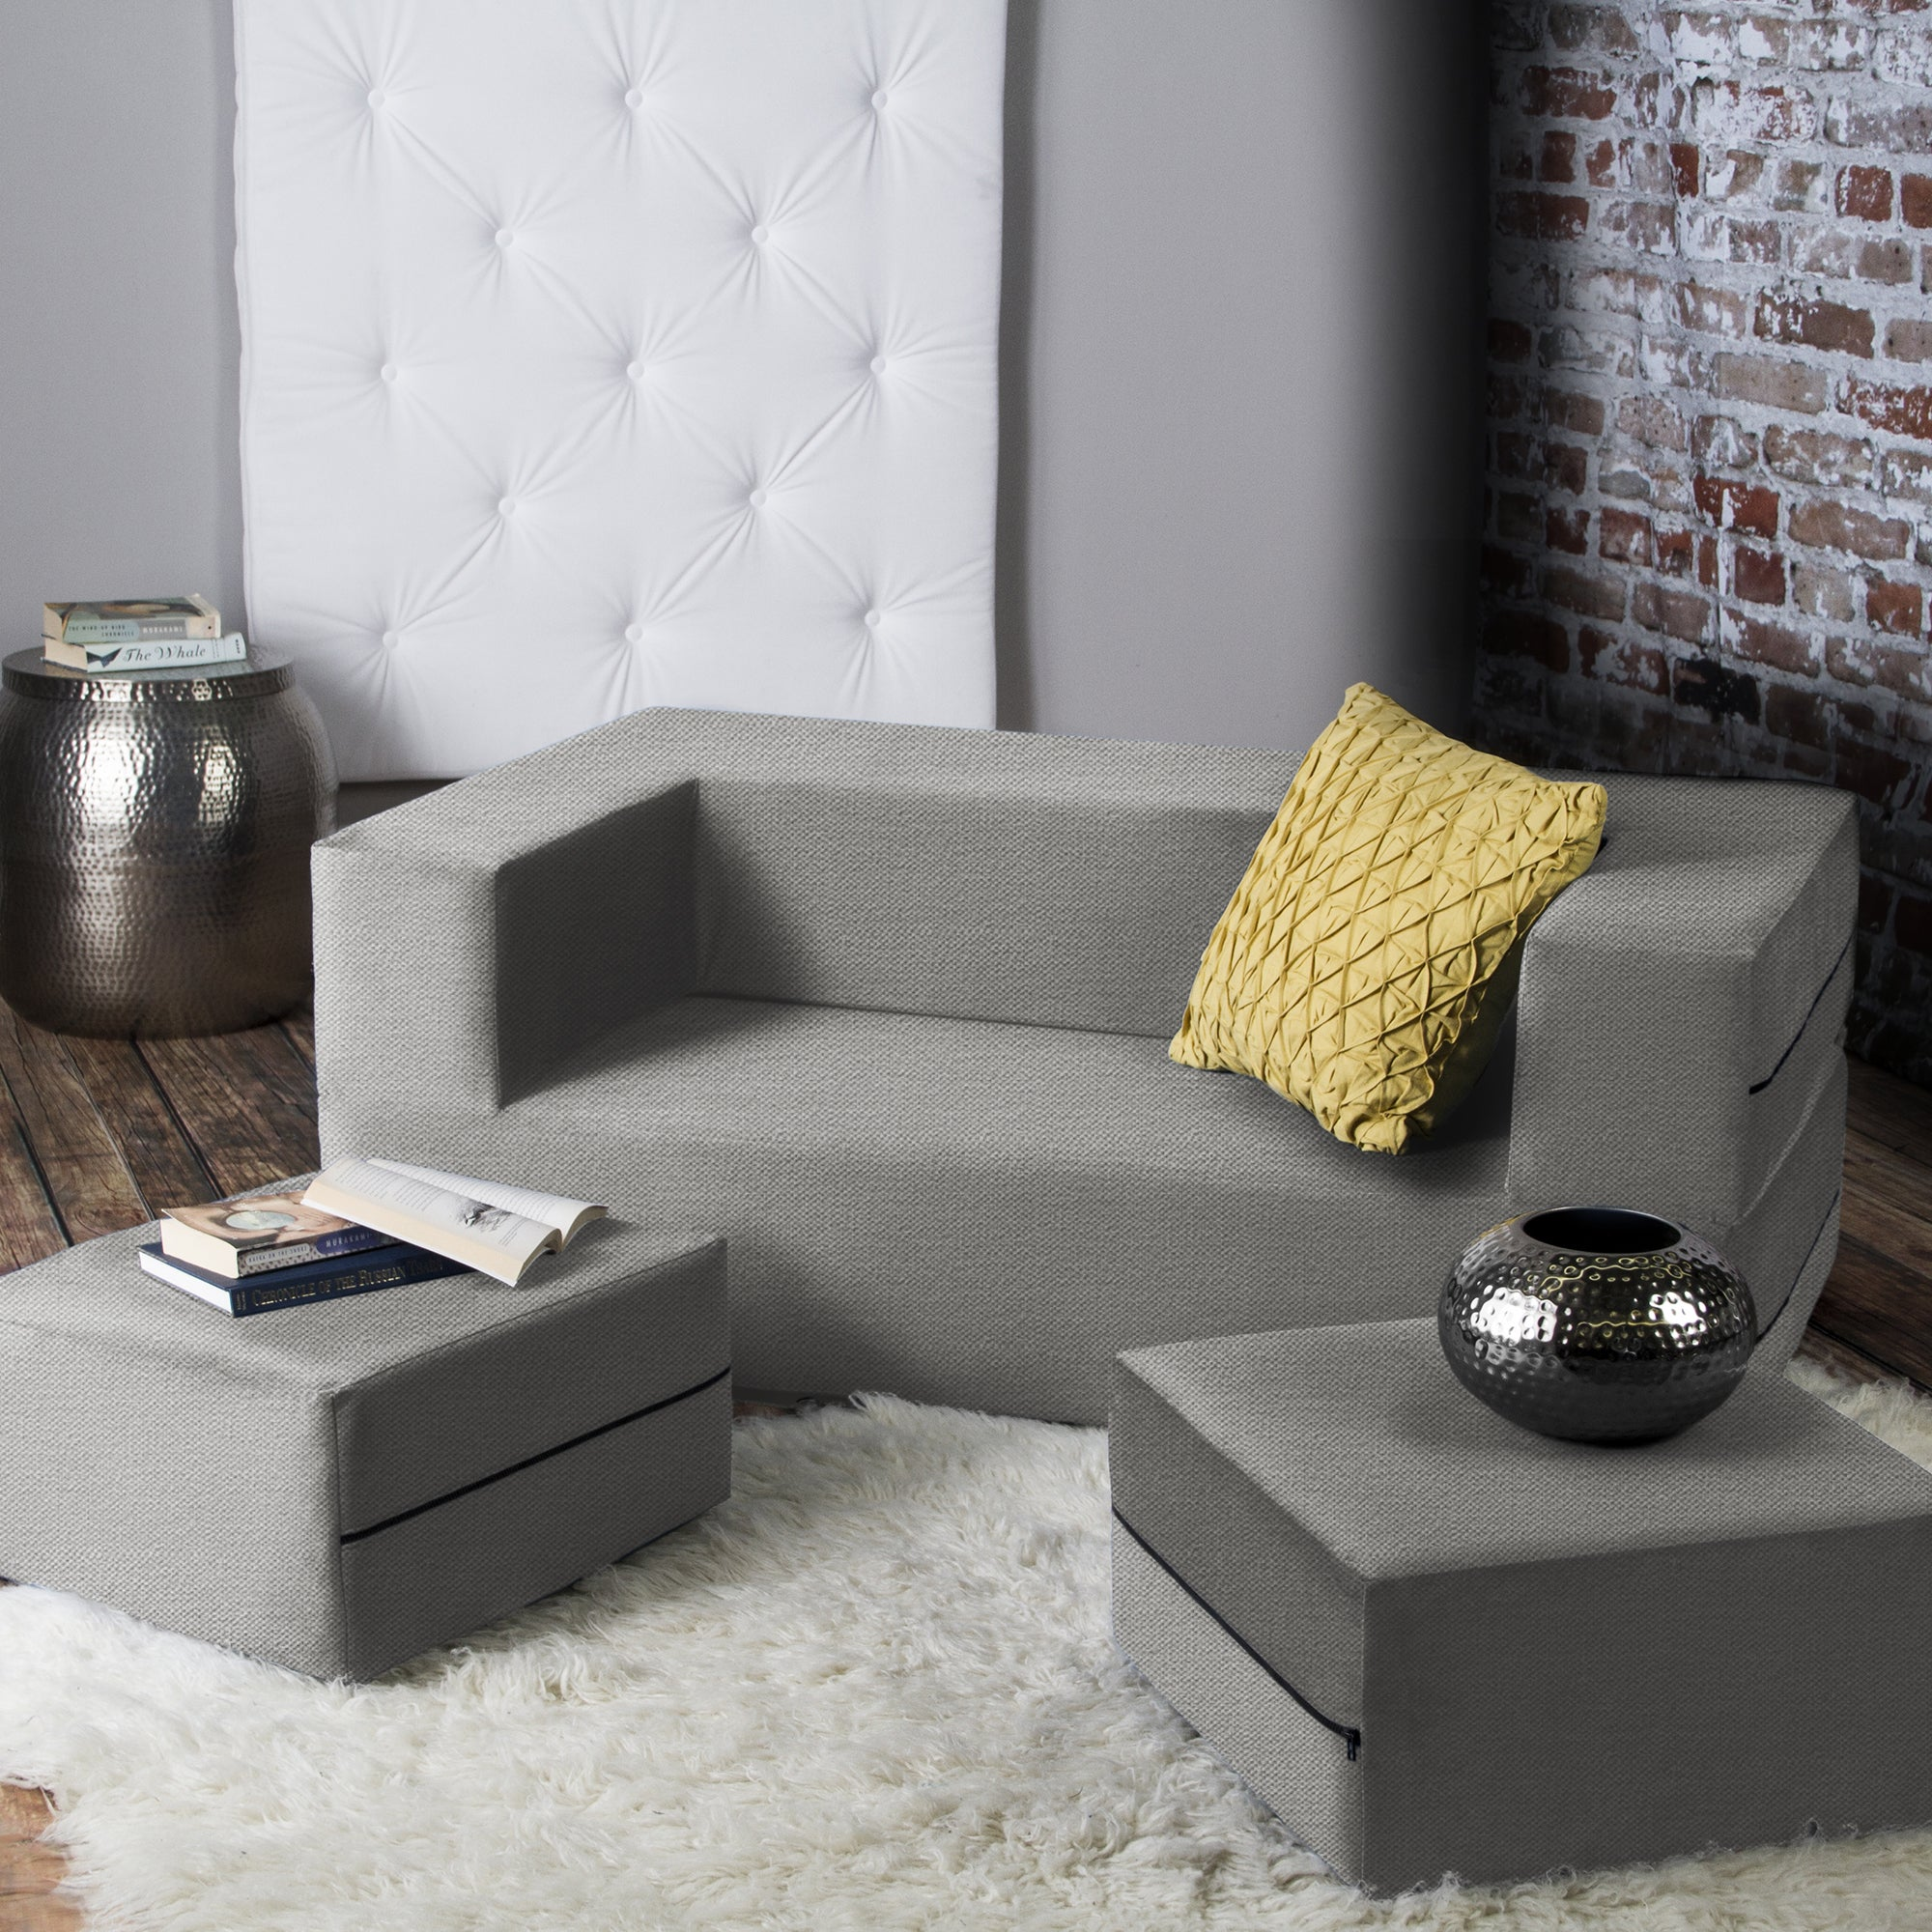 fabric comfort sizes iv storage open sis and klein sleeper american sectional available product kalyn sofa leather multiple generation bed ottoman personalize customize by